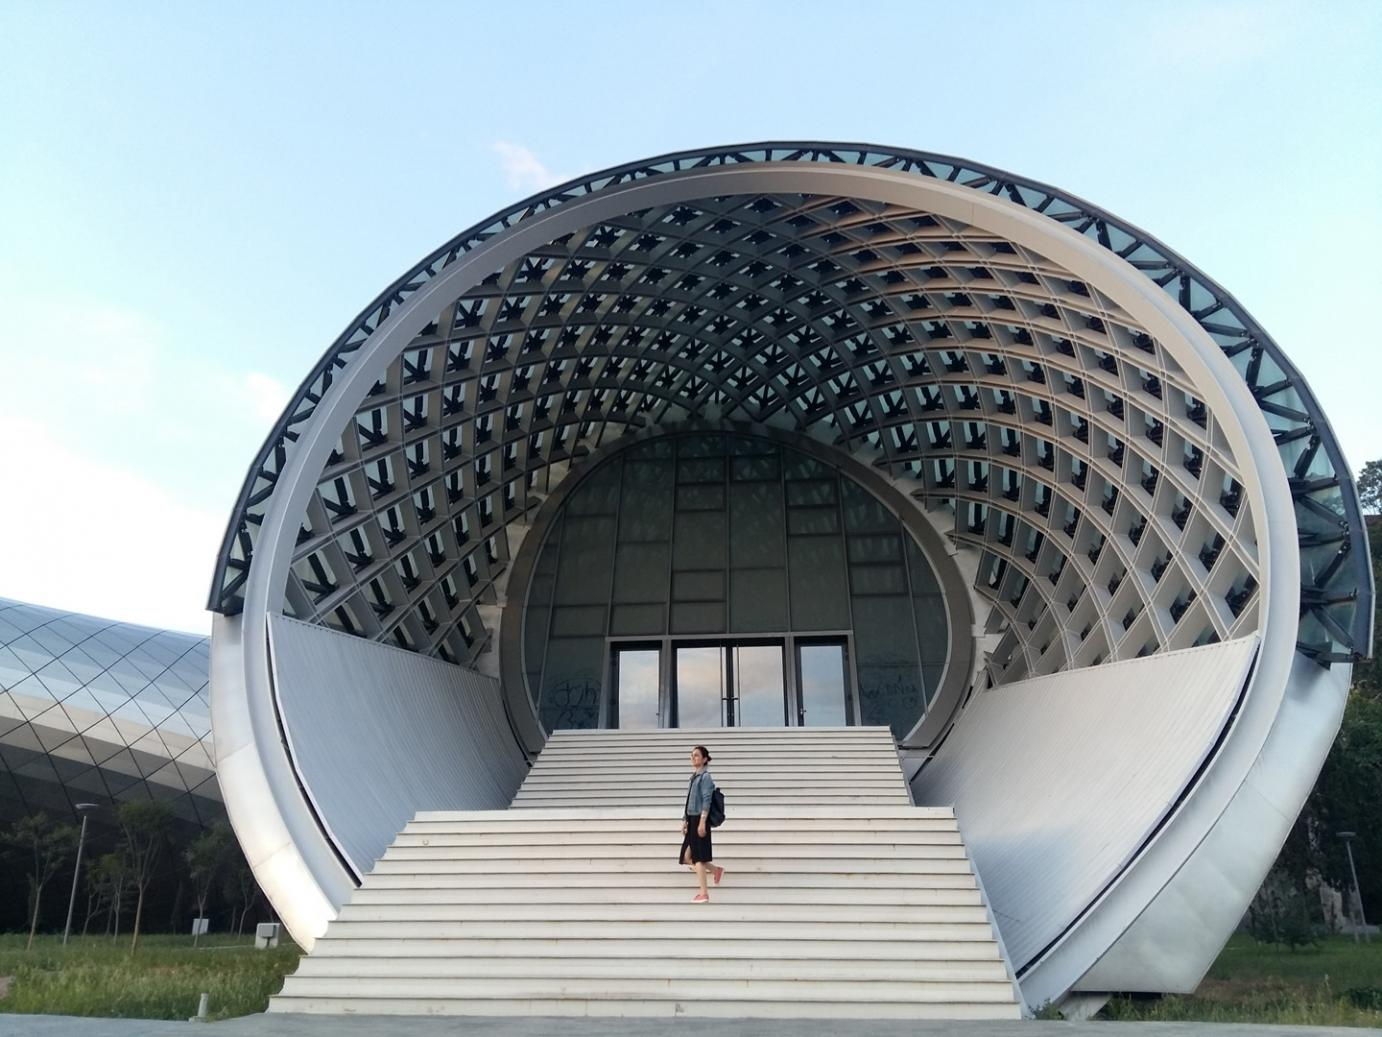 rhike-park-music-theatre-and-exhibition-hall-8-2046.jpg